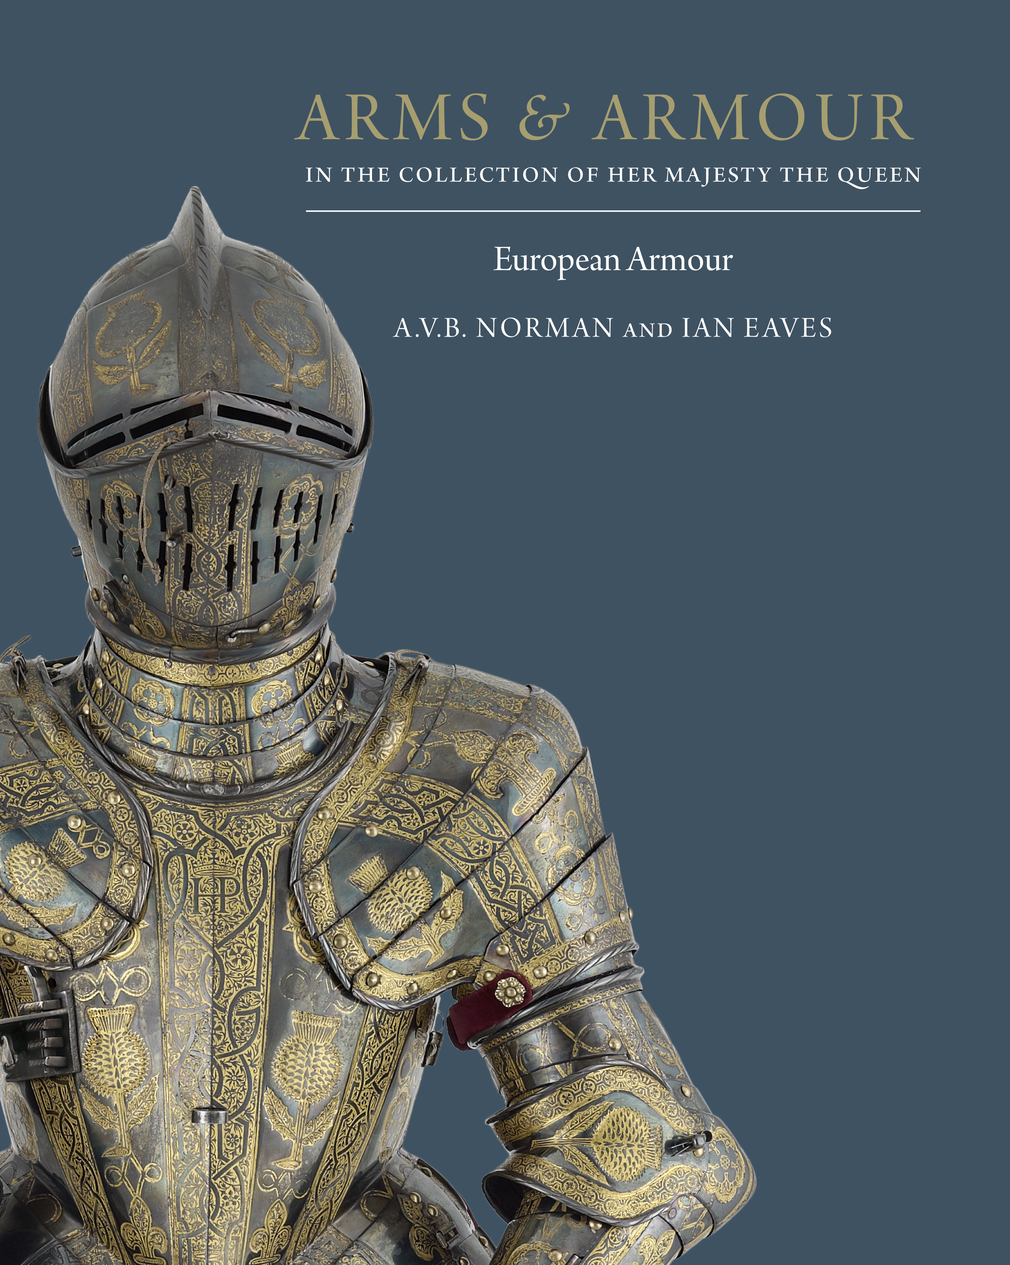 Cover jacket of Arms & Armour